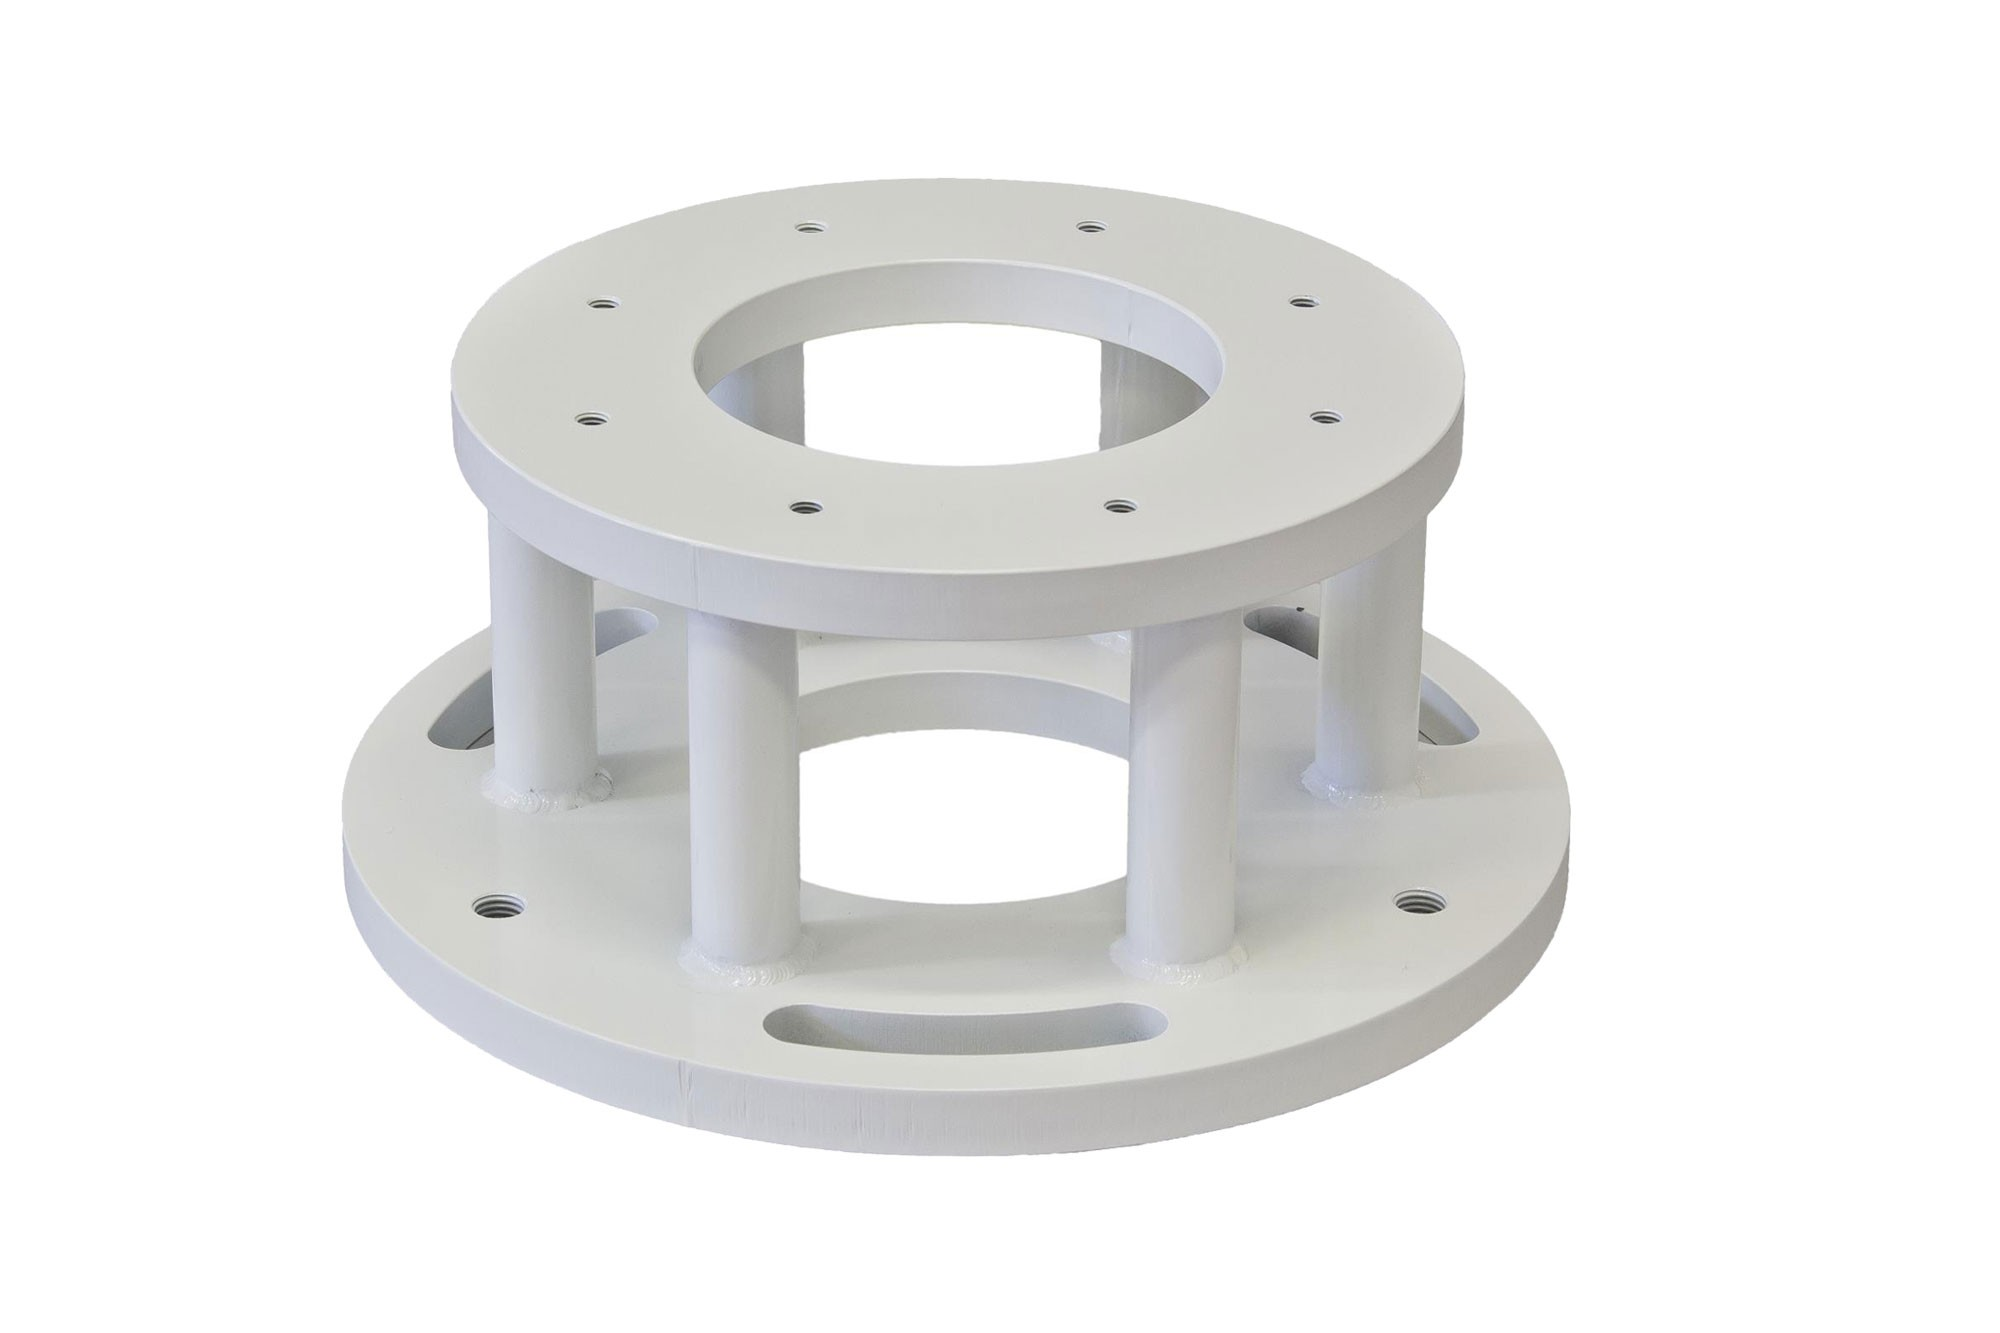 Baader Heavy Pillar (BHP) Levelling Flange for GM 3000, height 10 cm